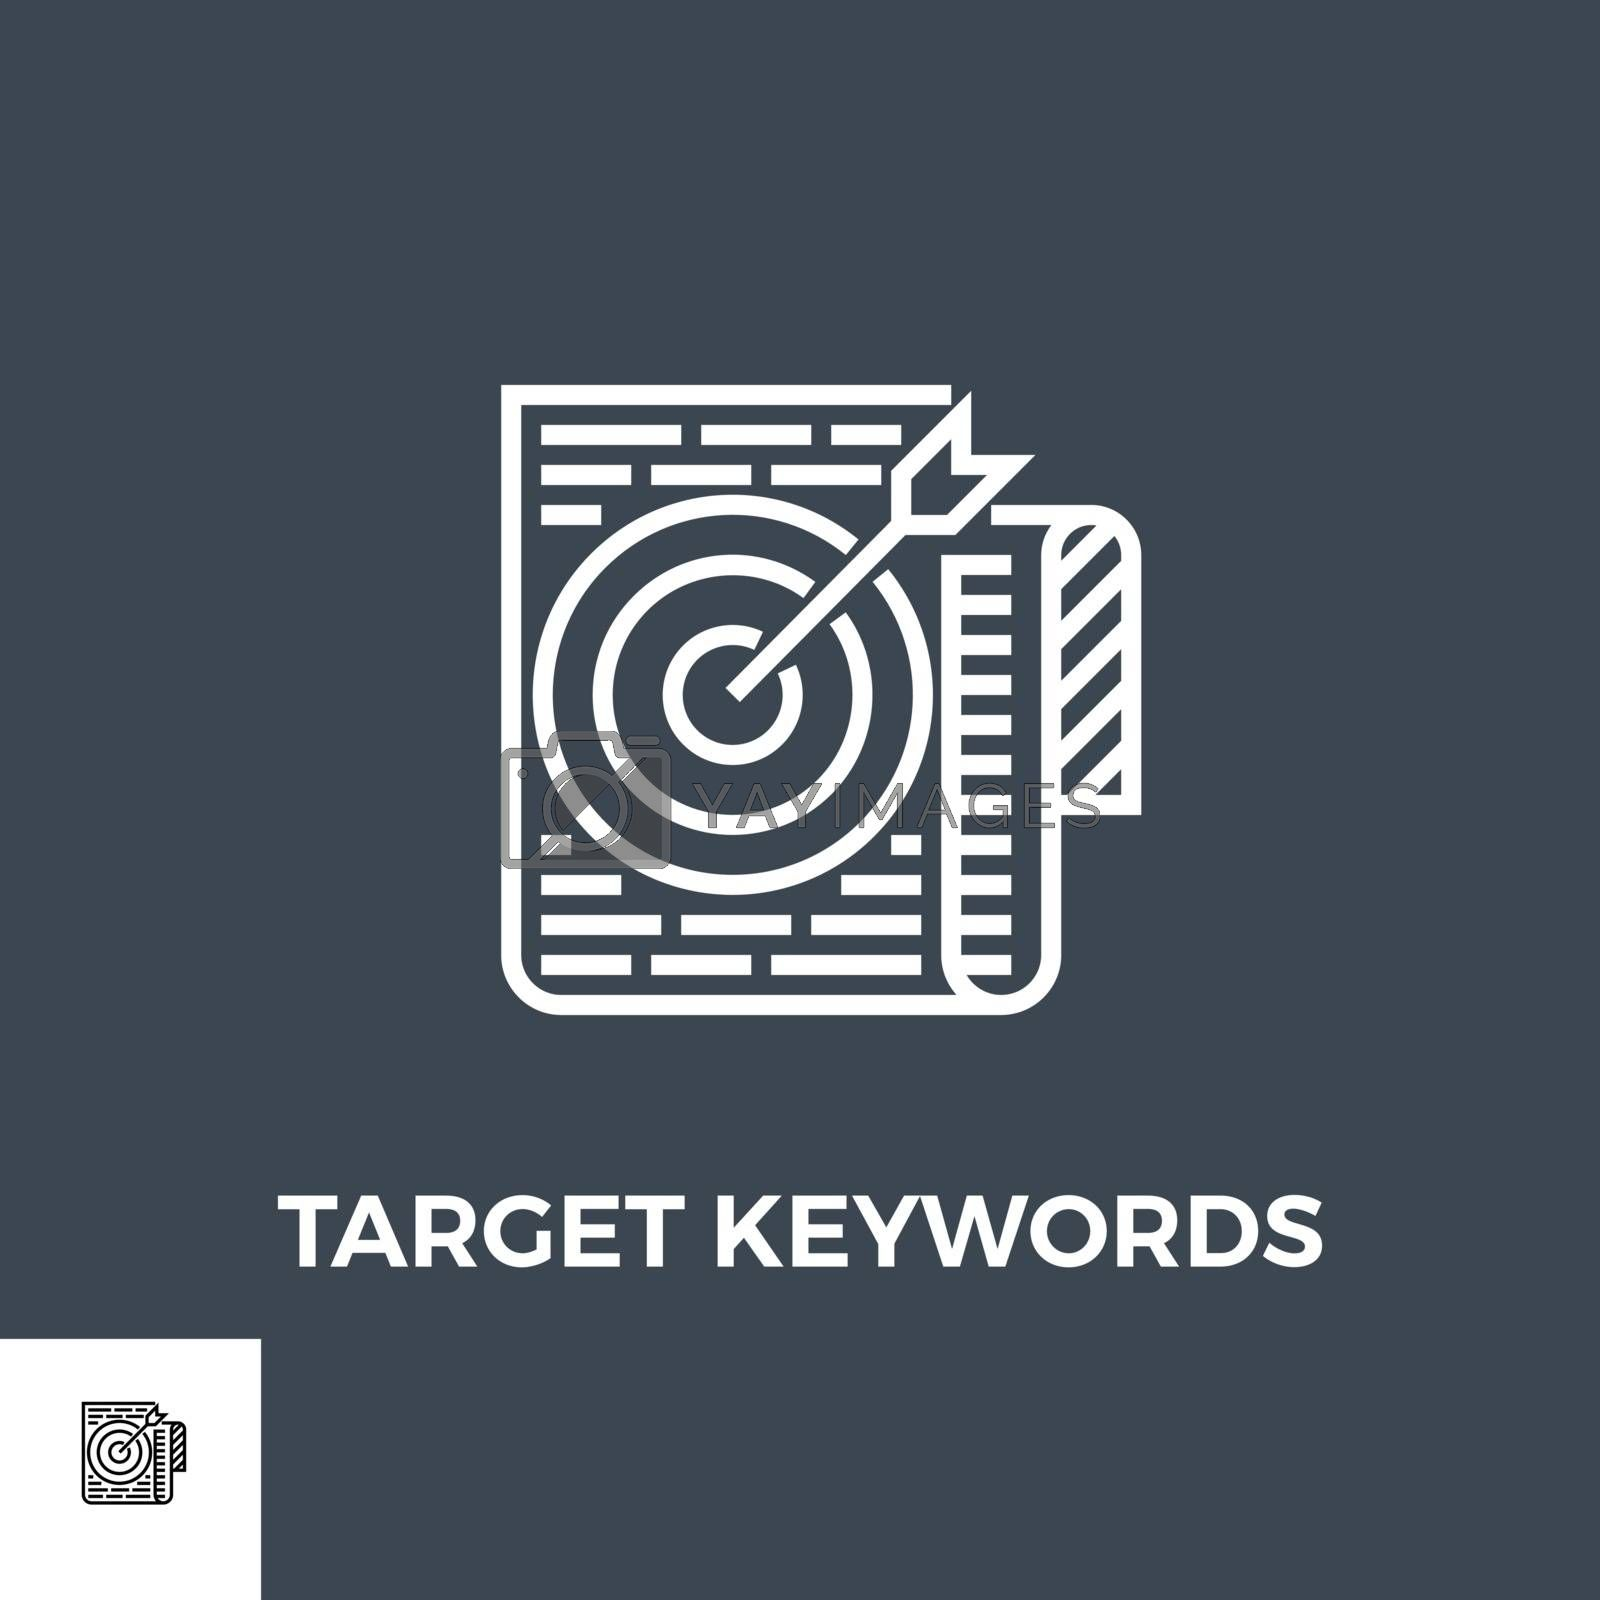 Target Keywords Related Vector Thin Line Icon. Isolated on Black Background. Vector Illustration.